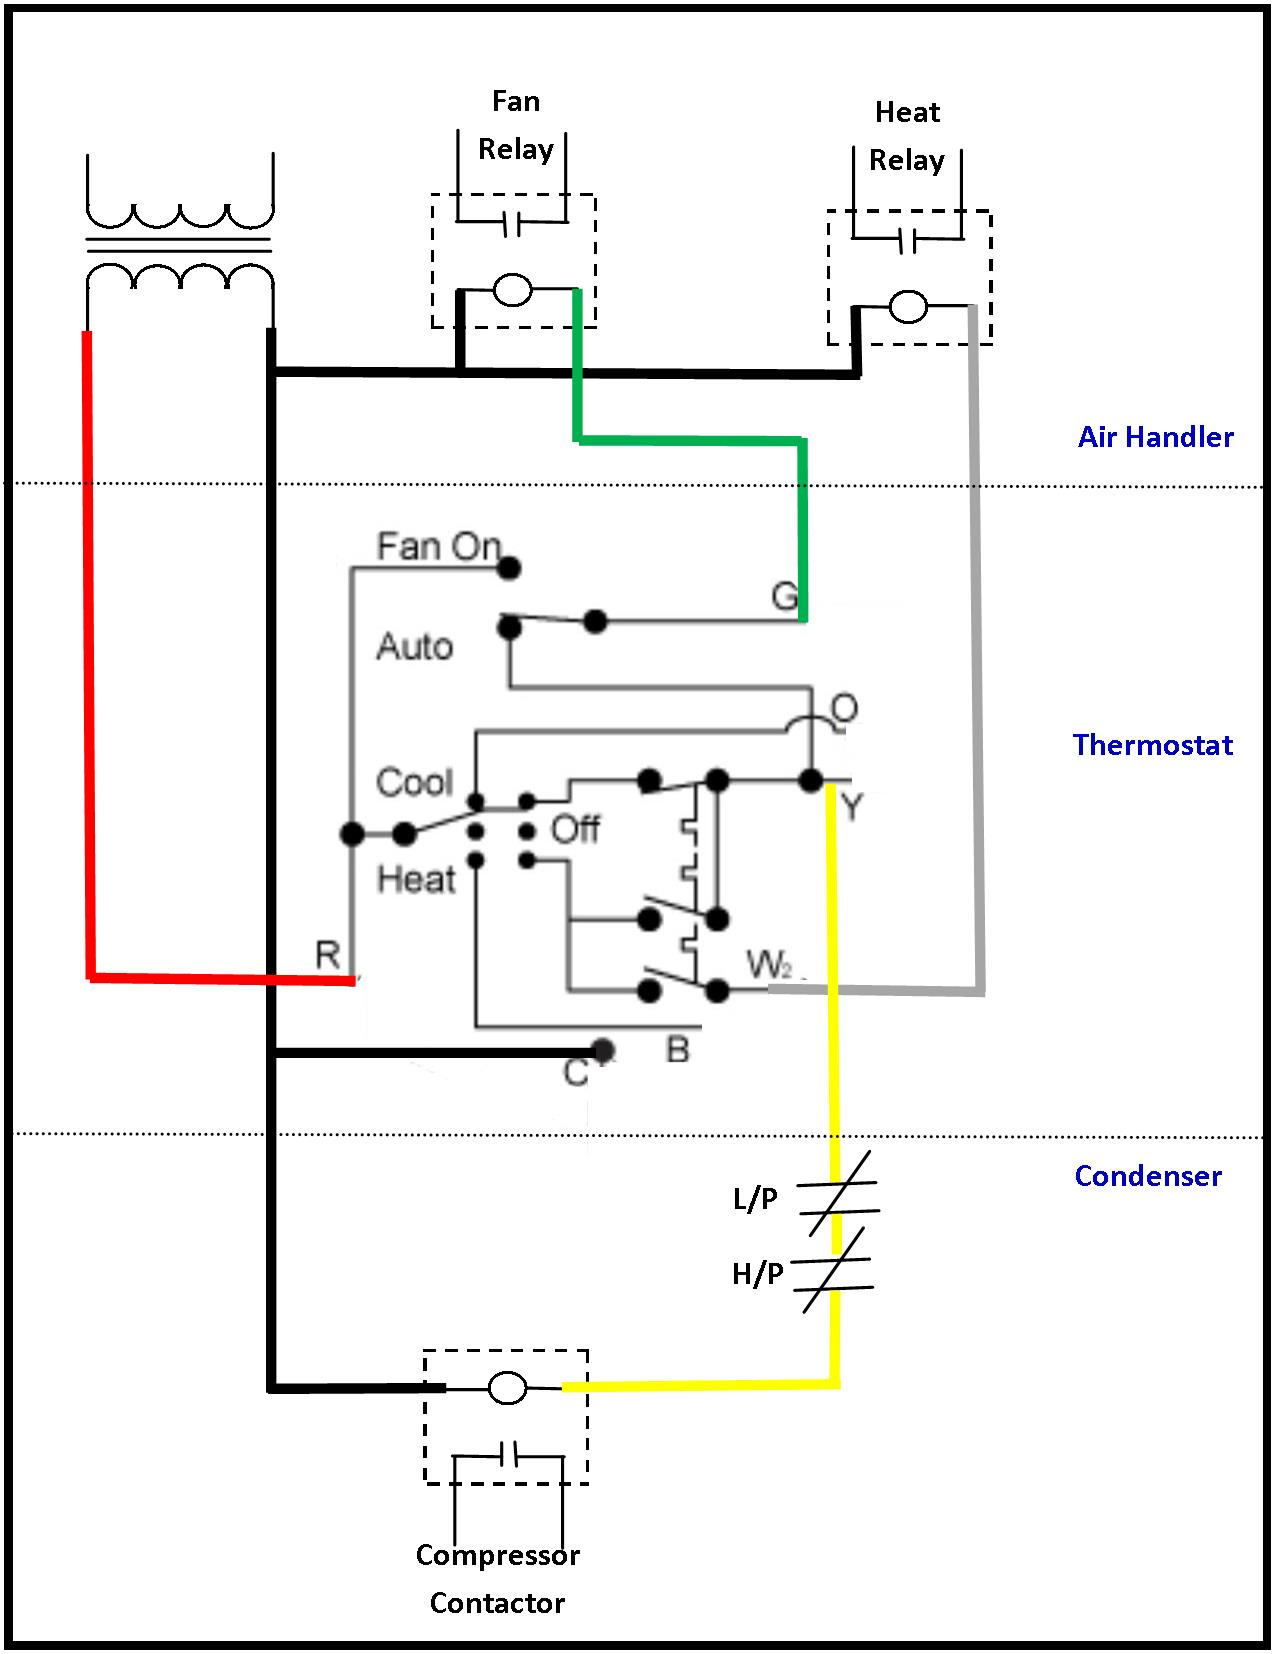 AC low voltage wiring diagram1 hvac wire diagram hvac diagrams schematics \u2022 wiring diagrams j electric furnace fan relay wiring diagram at eliteediting.co